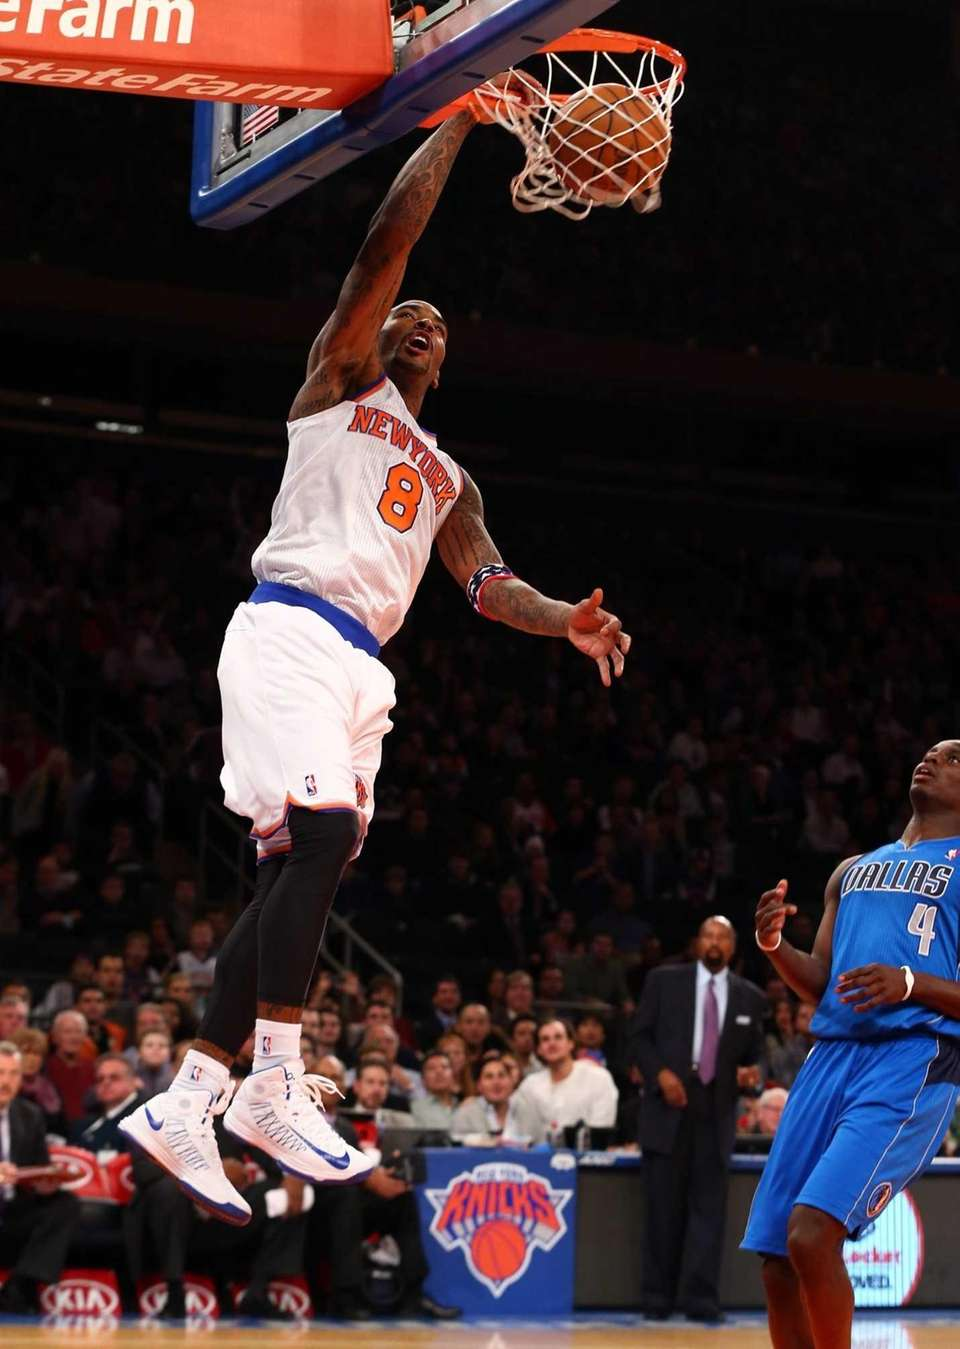 J.R. Smith dunks the ball in the first